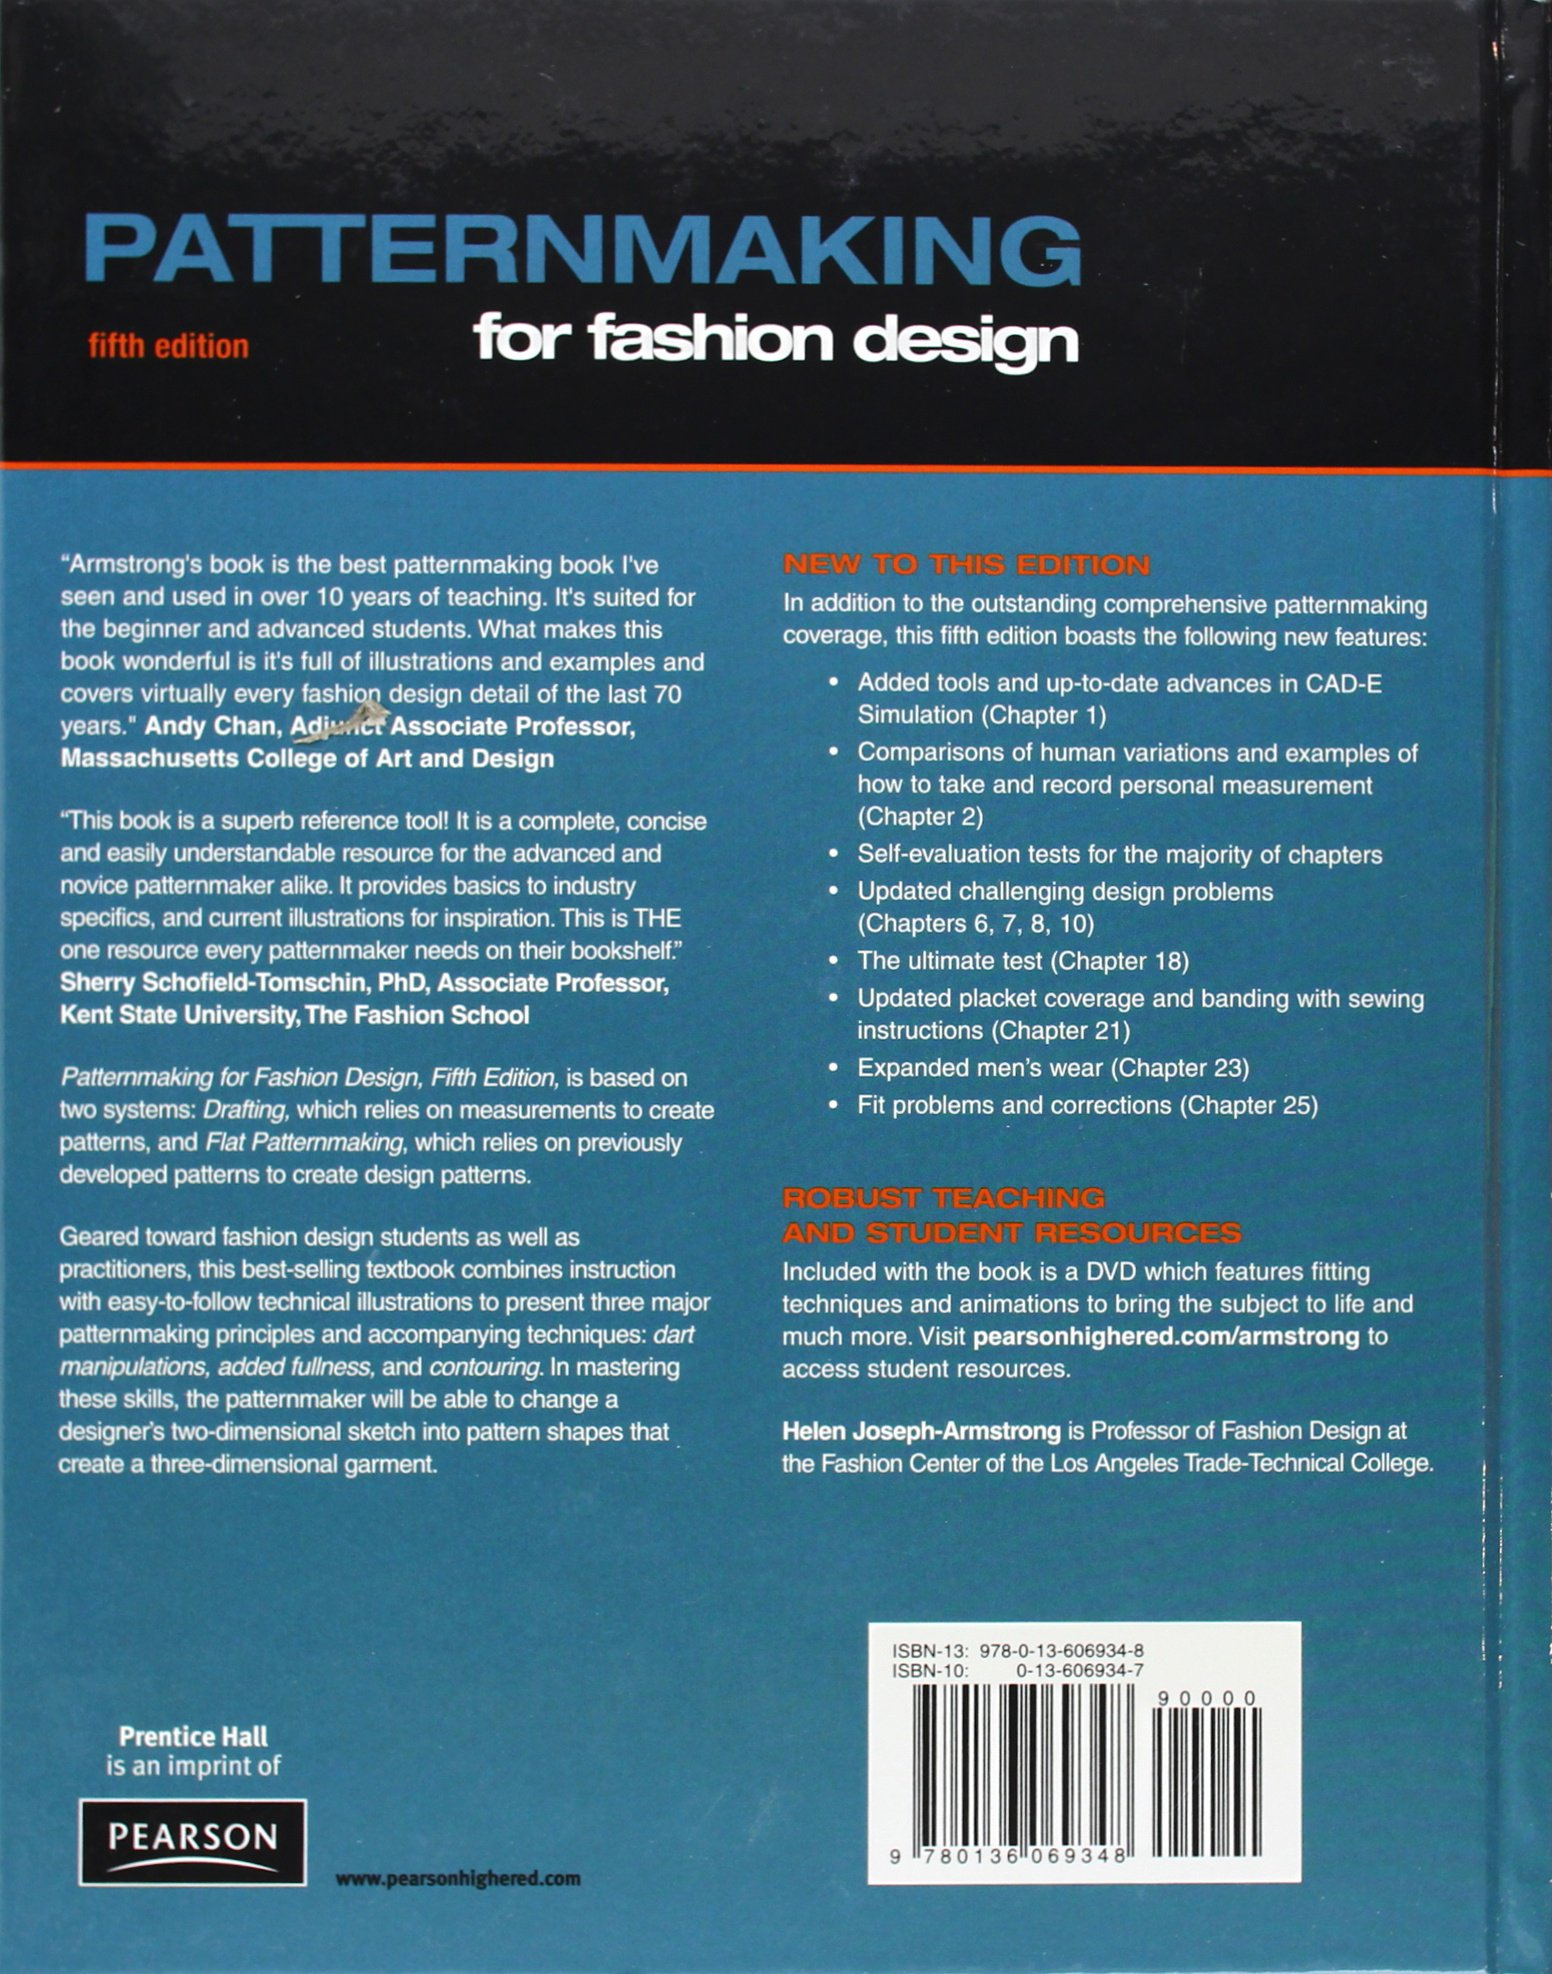 fashion design books for fashion students the best design books Amazon | Patternmaking for Fashion Design | Helen Joseph Armstrong | Sewing